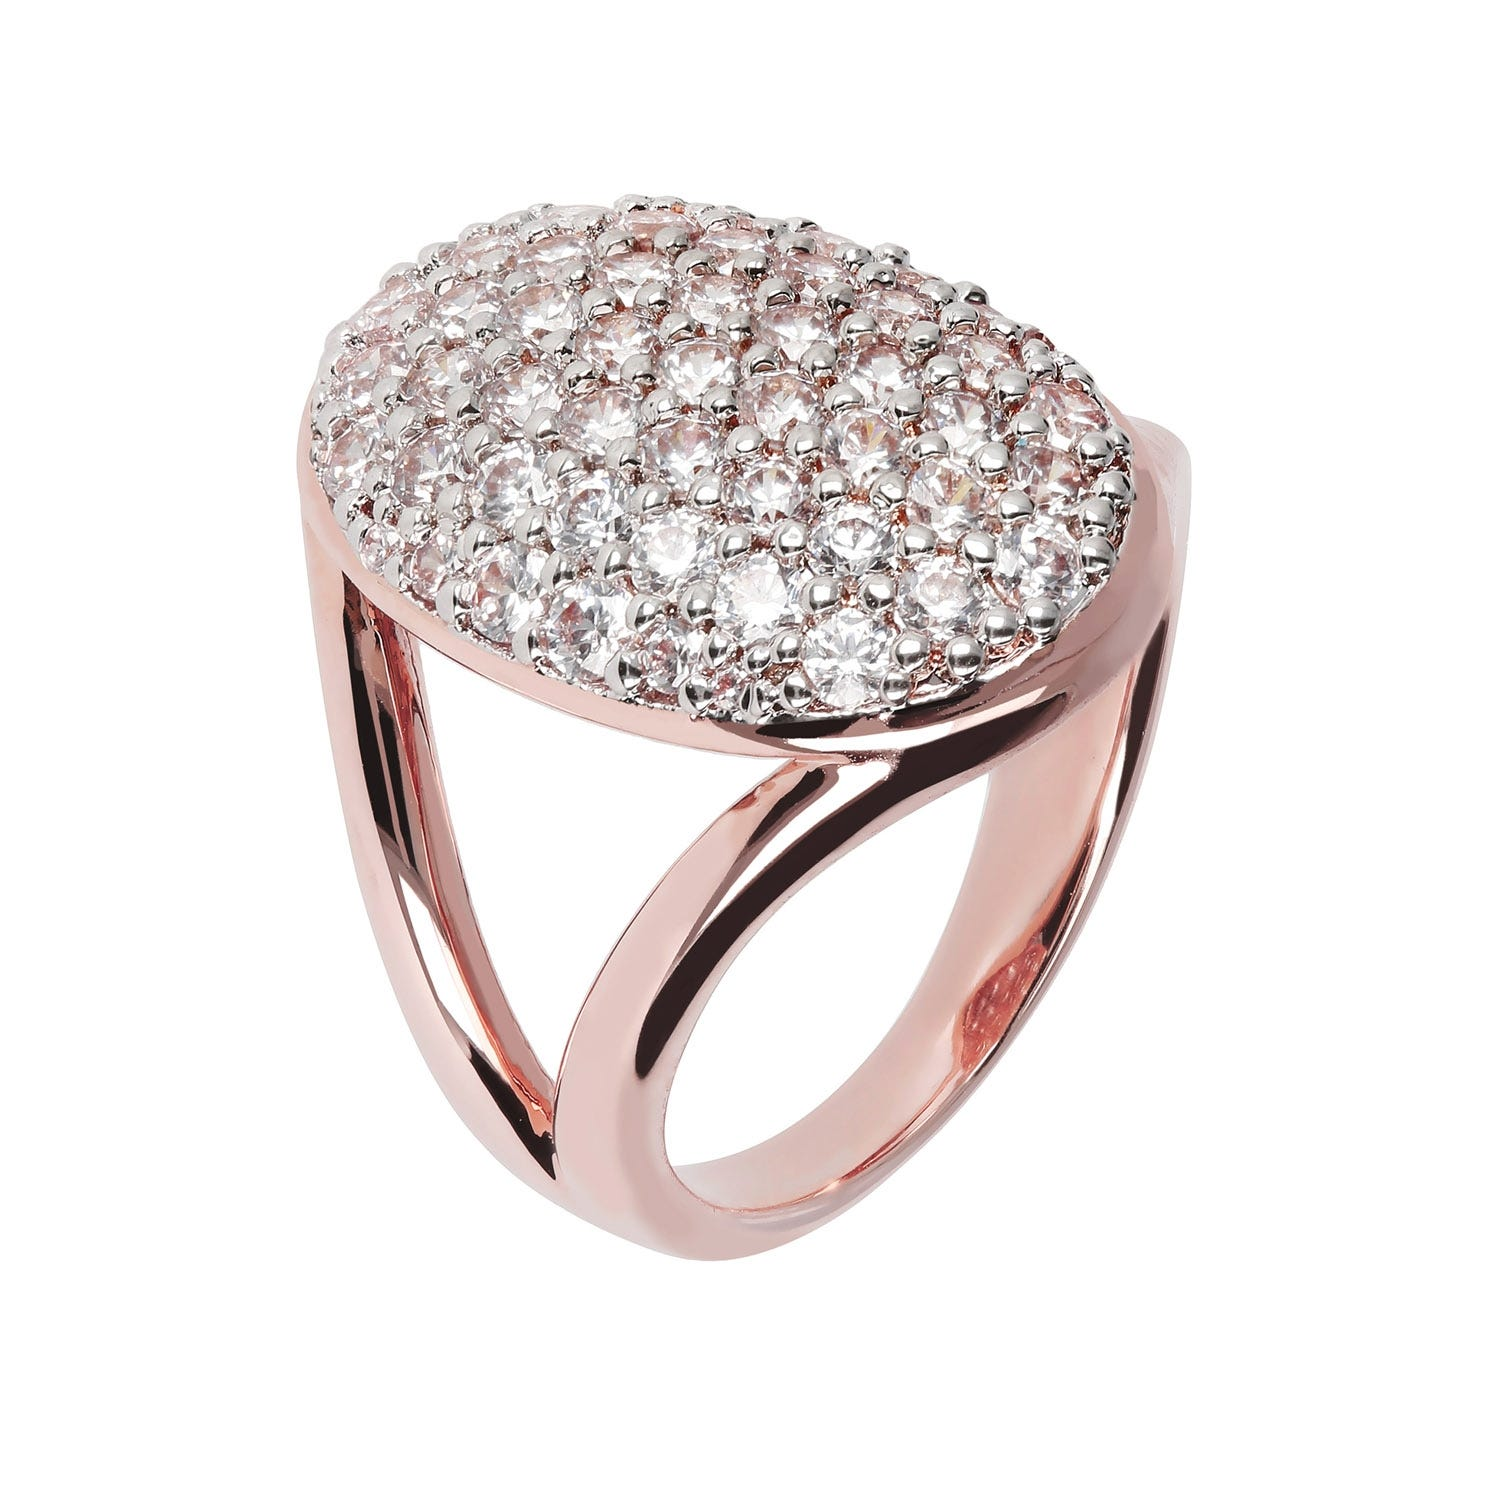 Bronzallure 18ct Rose Gold-Plated Cubic Zirconia Oval Ring